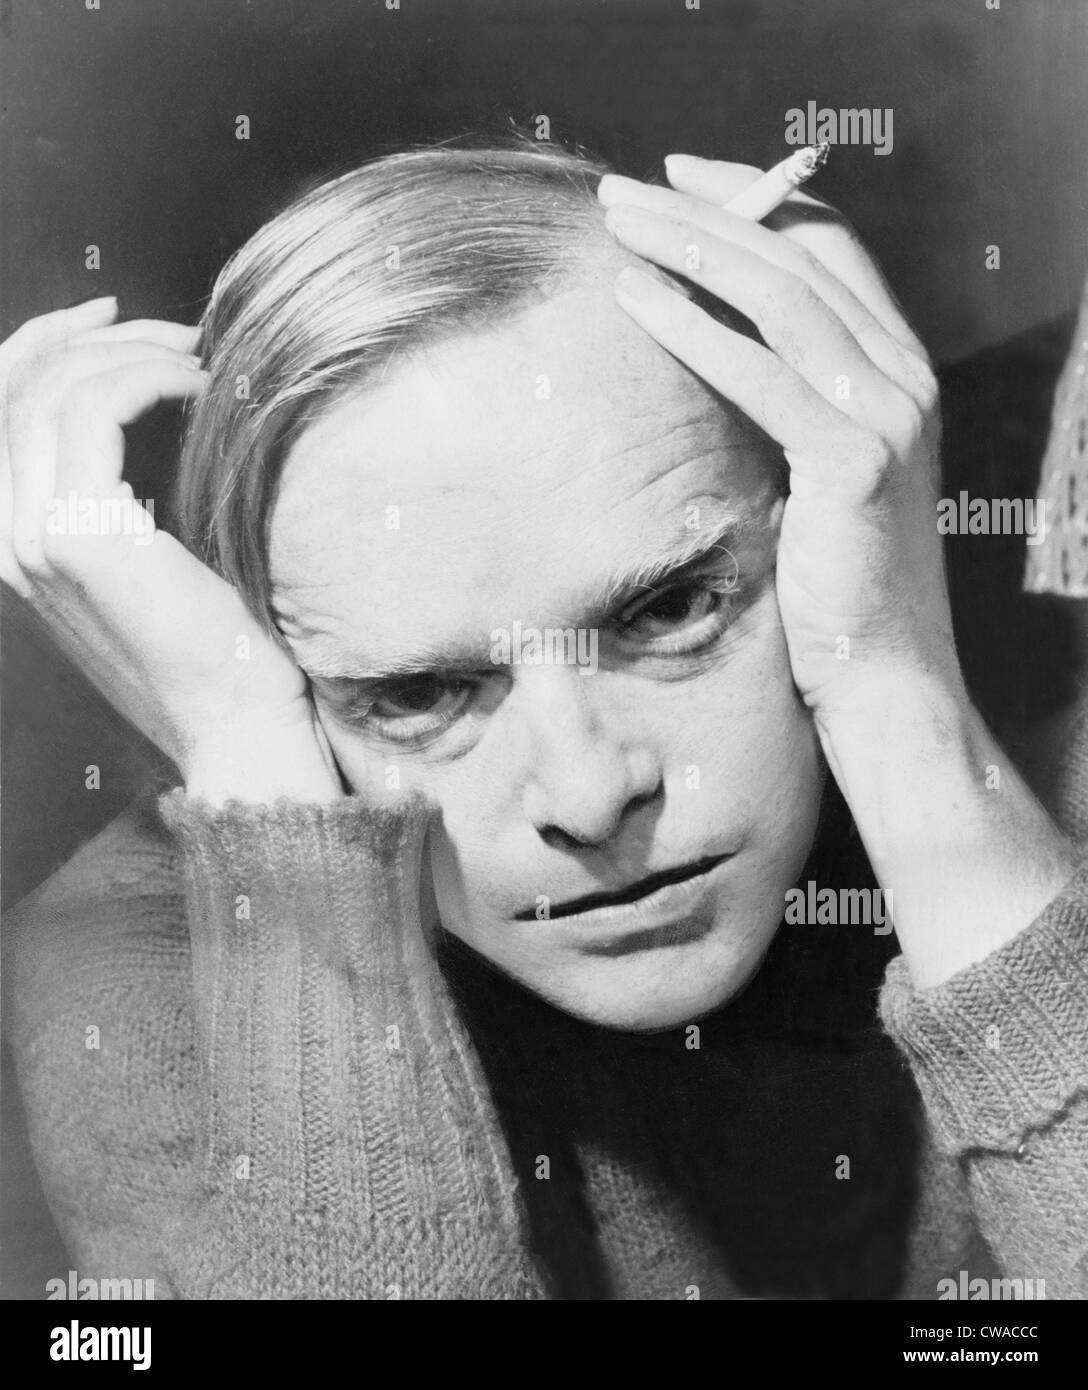 Truman Capote (1924-1984), southern American novelist and playwright, author of 'Breakfast at Tiffany's,' - Stock Image